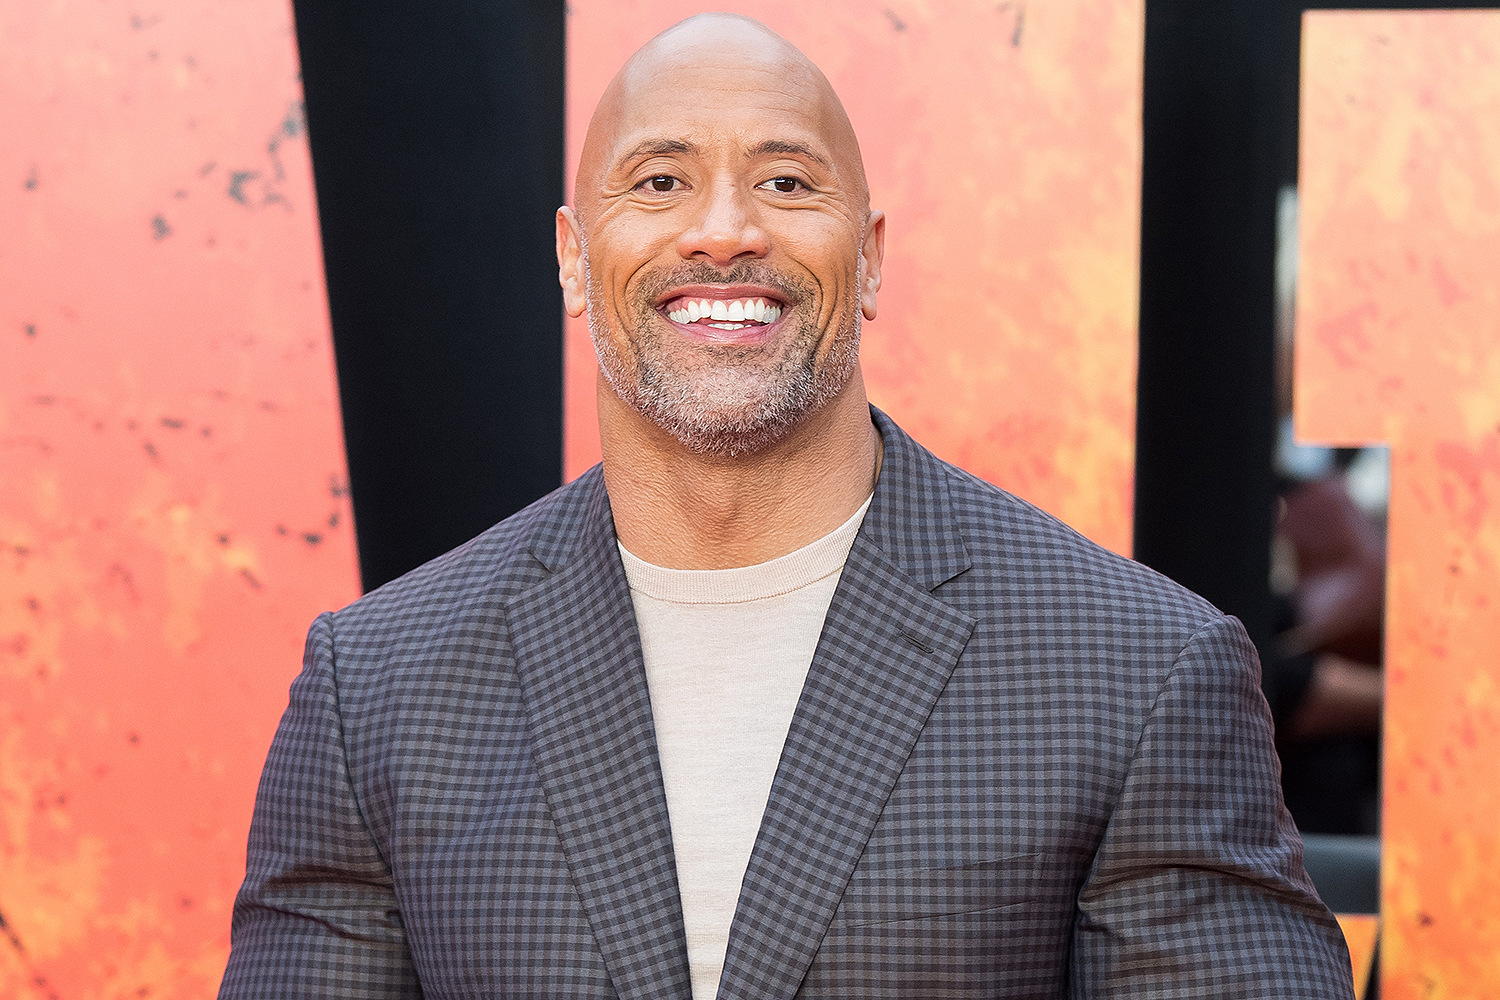 Dwayne Johnson's voice cracks while singing Garth Brooks song in sweet message to fan with breast cancer